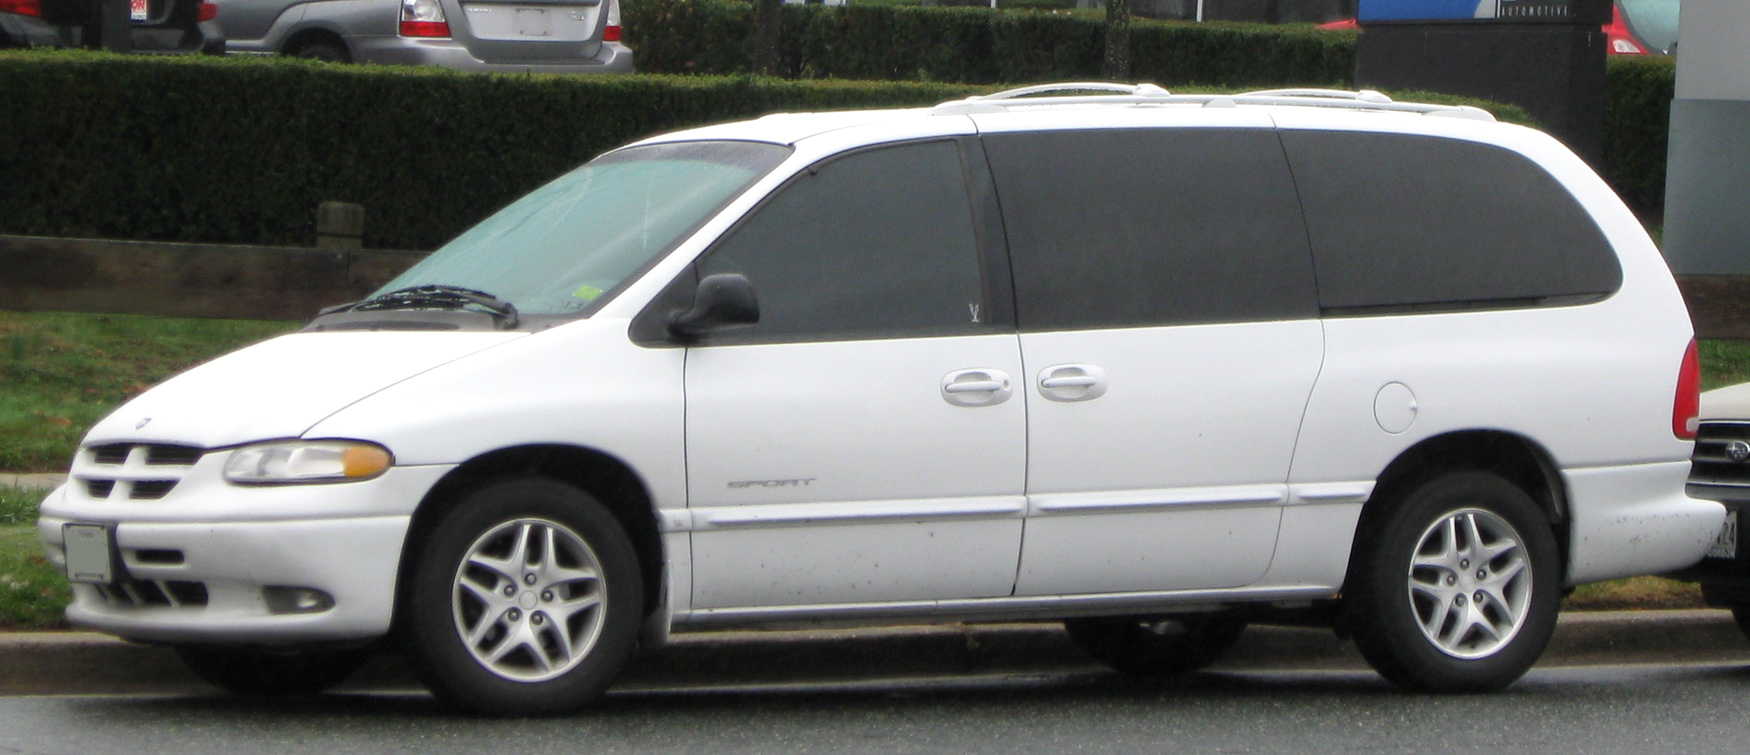 Pictures of dodge caravan (_iii_) 1999